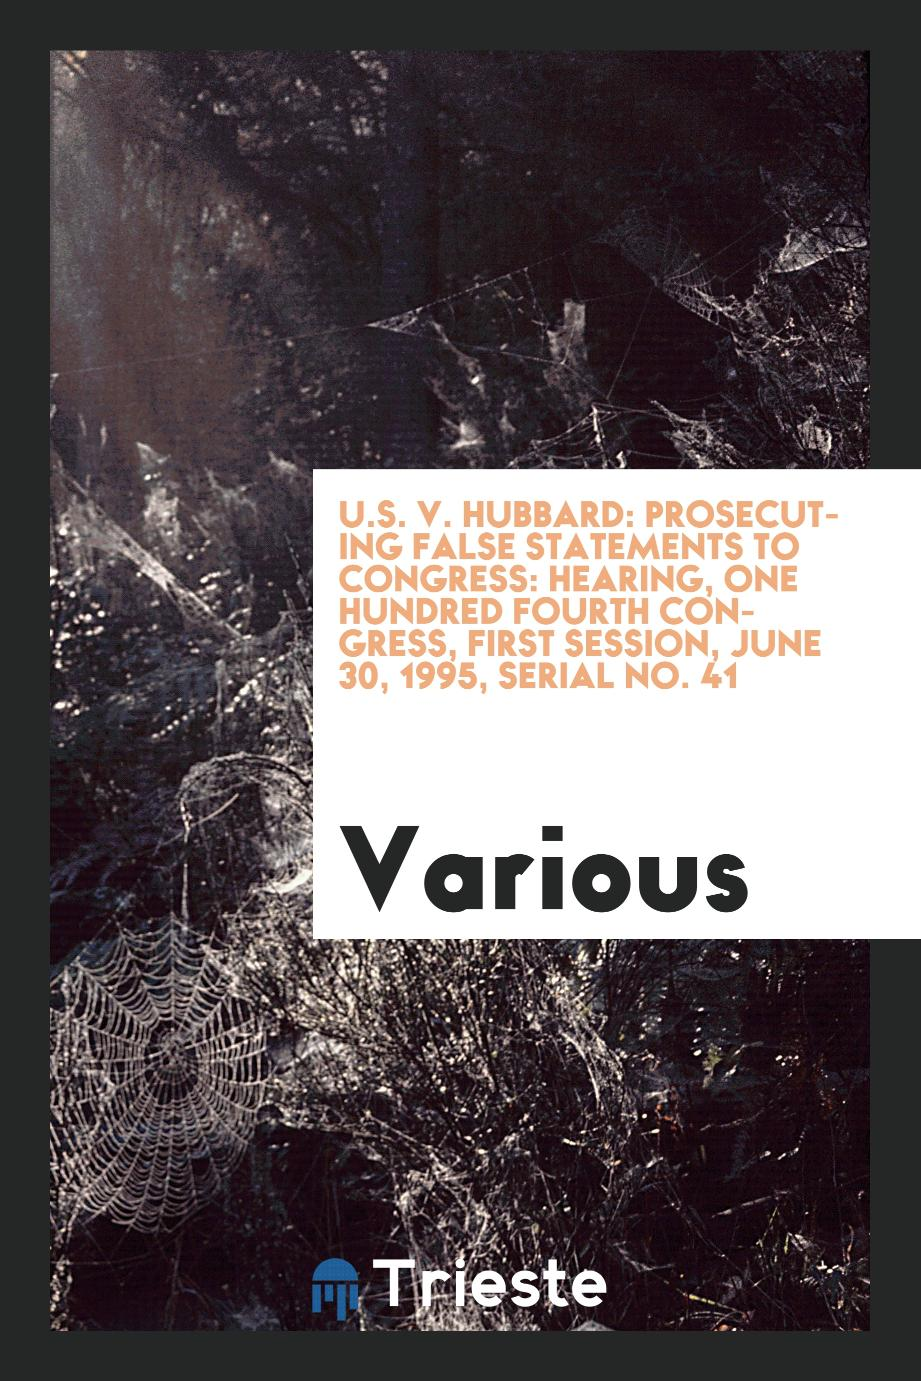 U.S. v. Hubbard: prosecuting false statements to Congress: Hearing, One Hundred Fourth Congress, first session, June 30, 1995, Serial No. 41